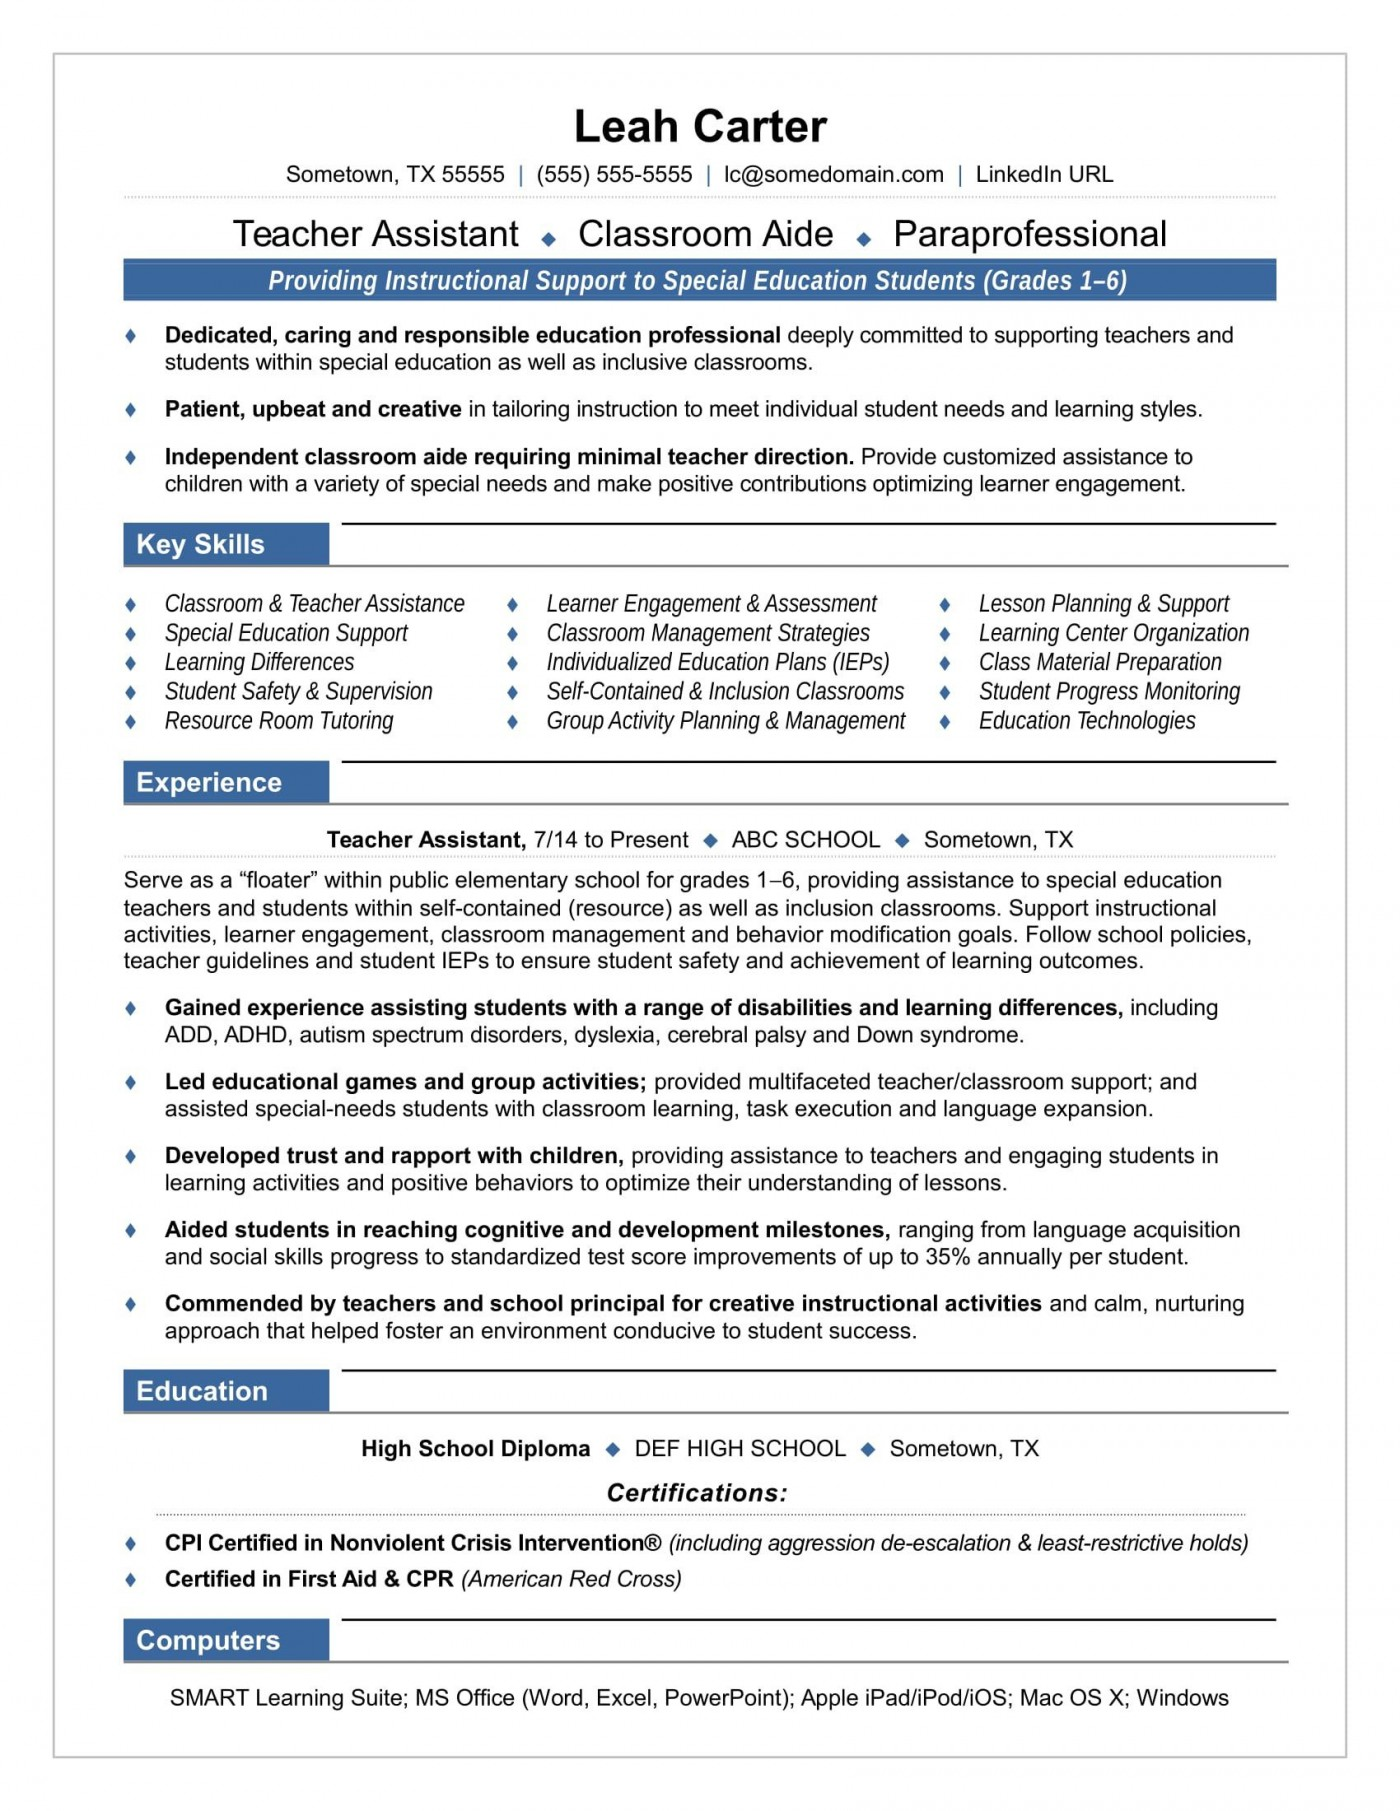 008 Fantastic Resume Example For Teaching Job High Definition  Sample Position In College Format1400